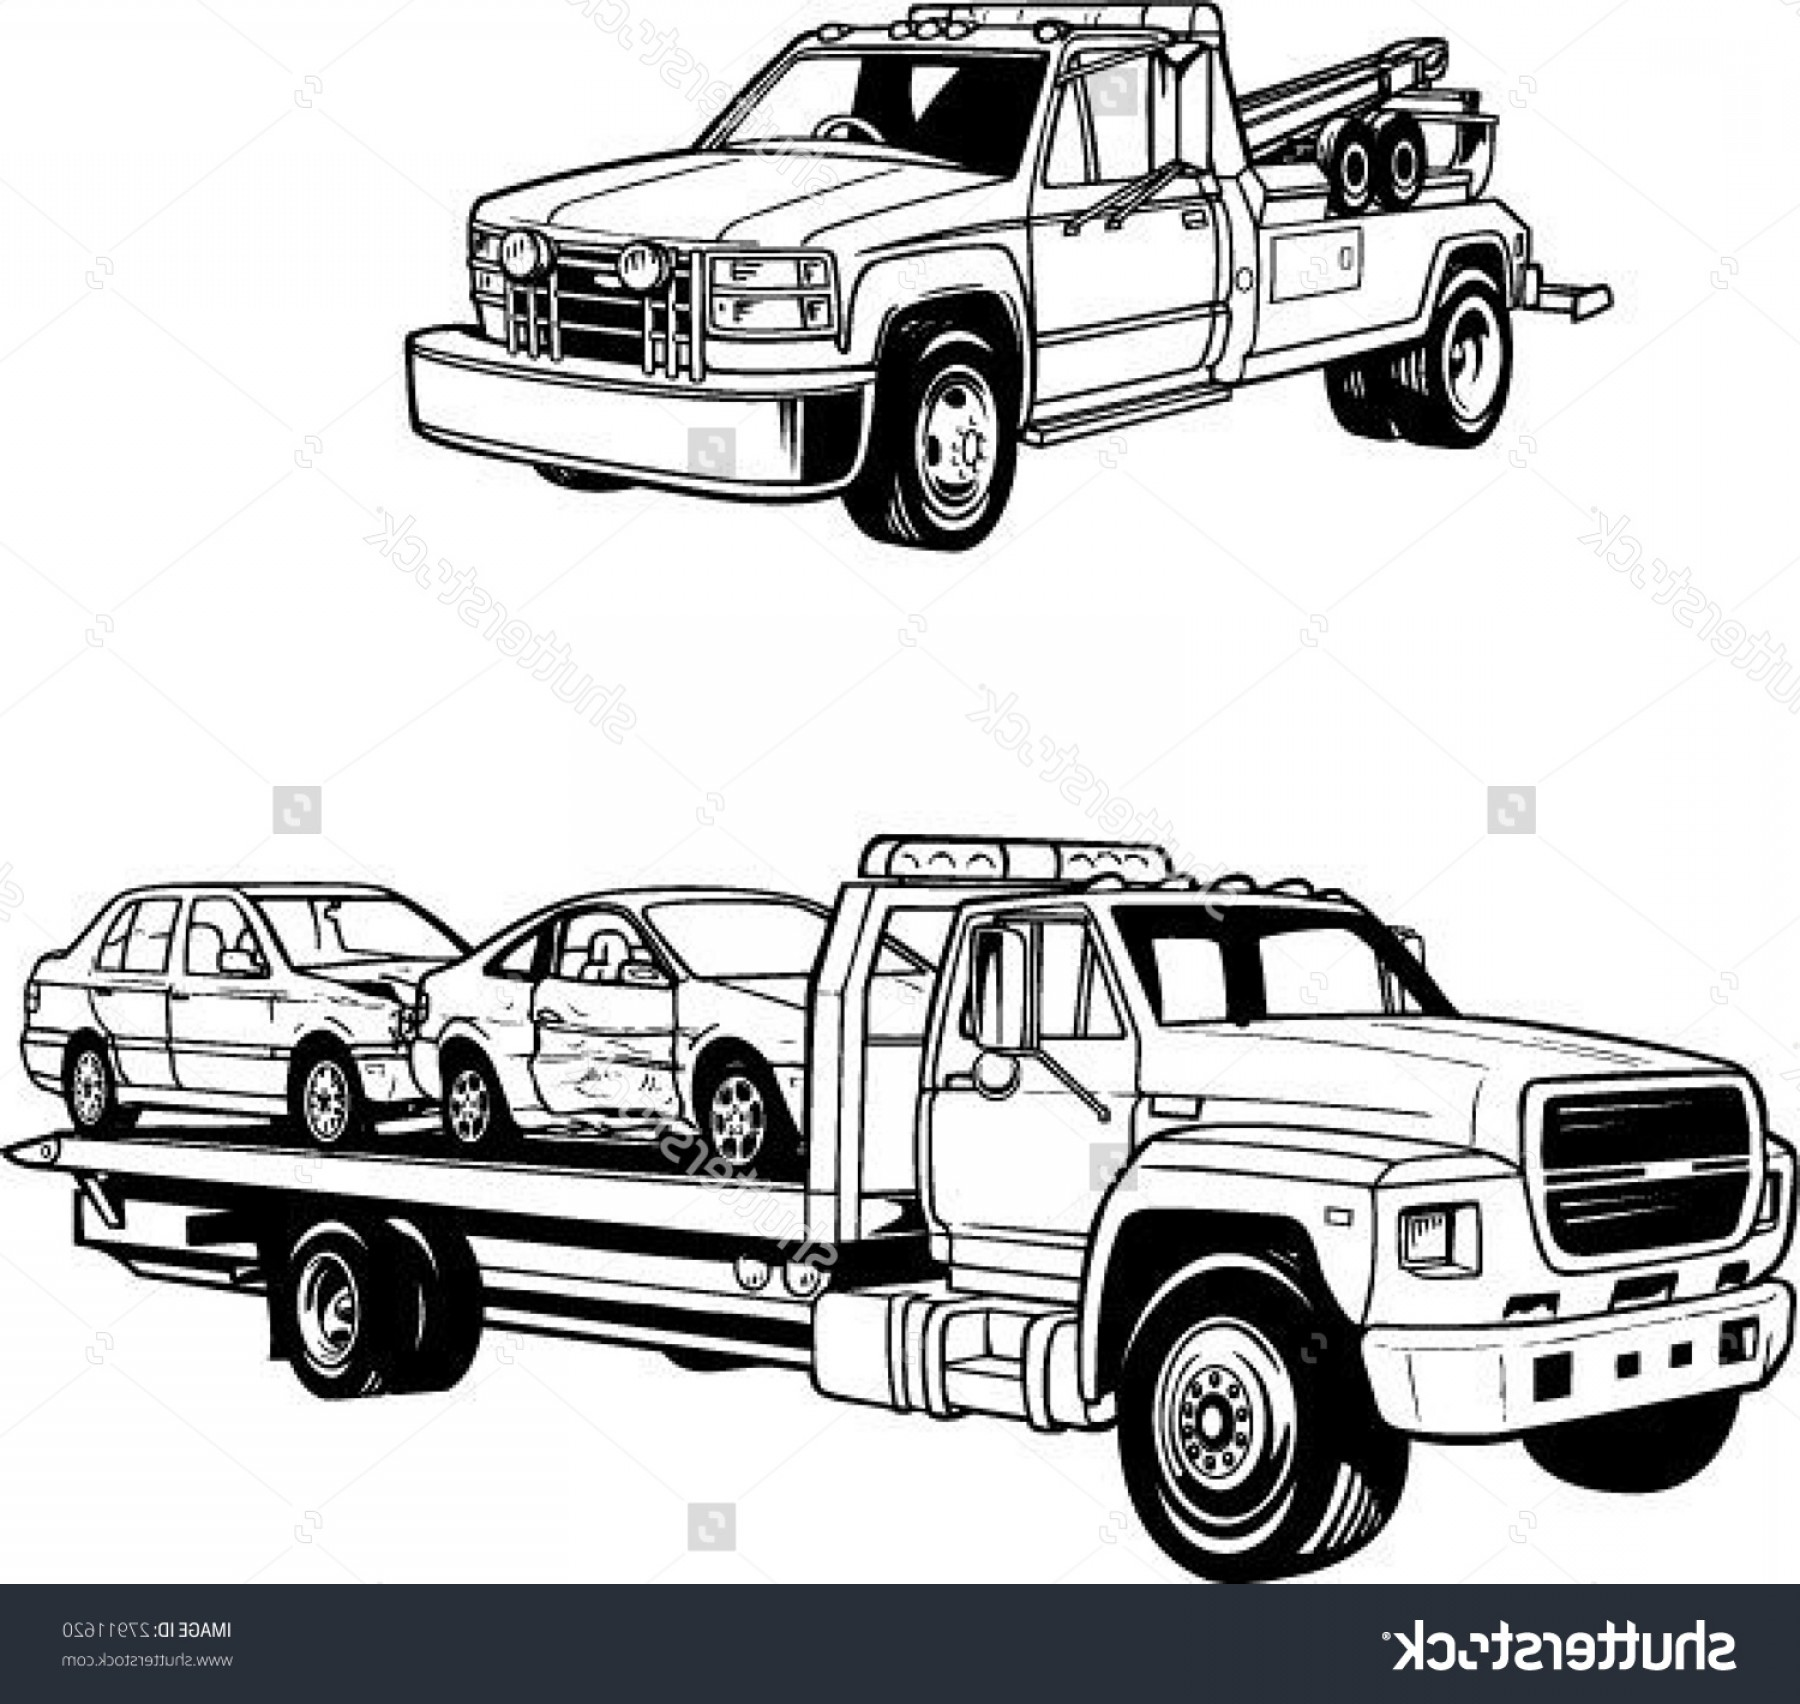 Towing Vector Clip Art: Flatbed Truck Clipart Flatbed Tow Truck Clipart Stock Vector Vector Tow Trucks